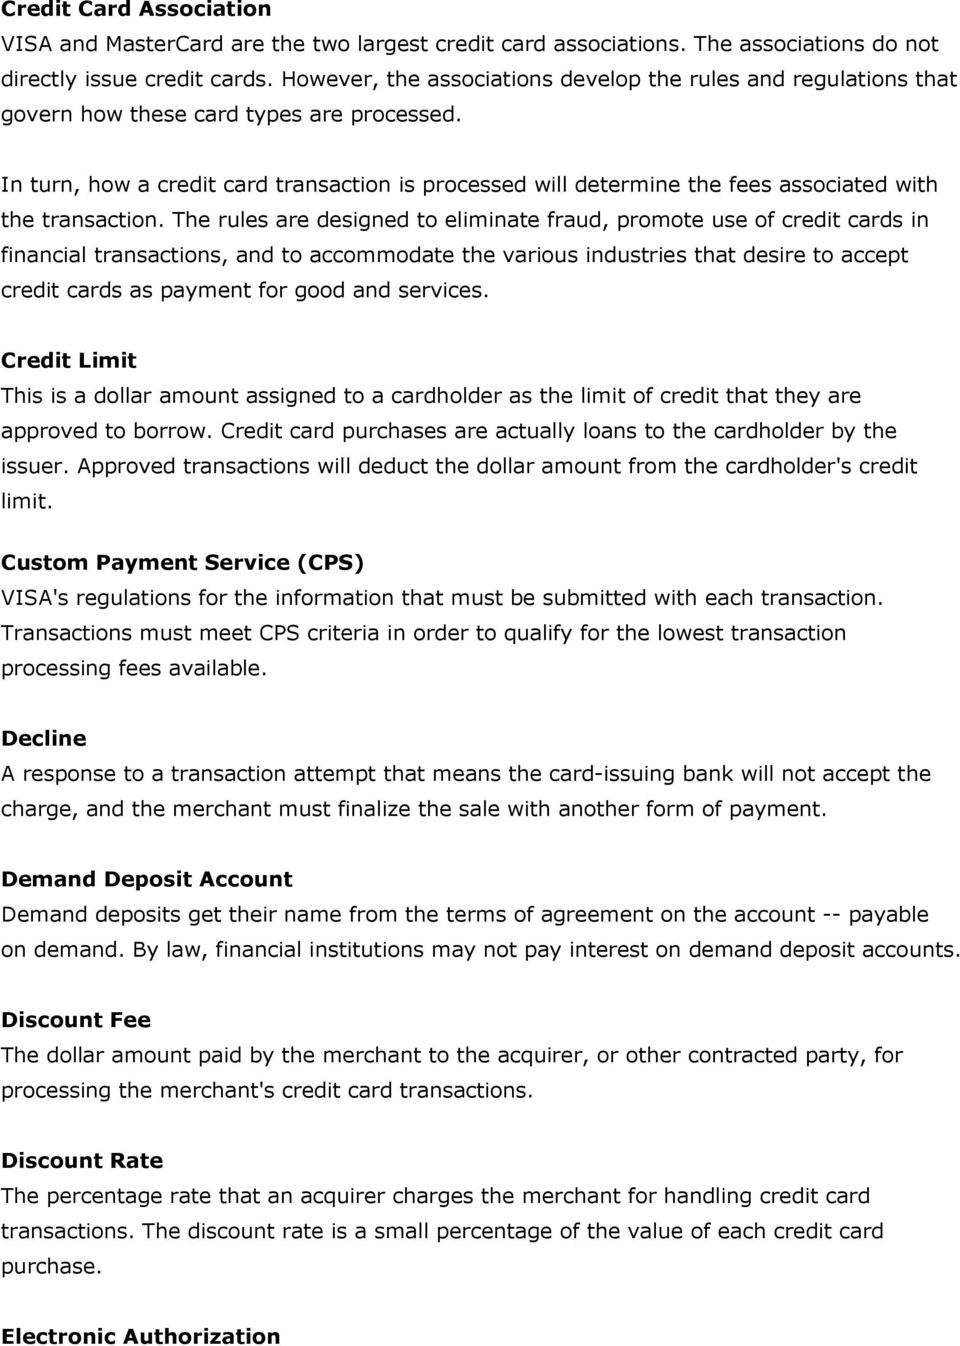 In turn, how a credit card transaction is processed will determine the fees associated with the transaction.